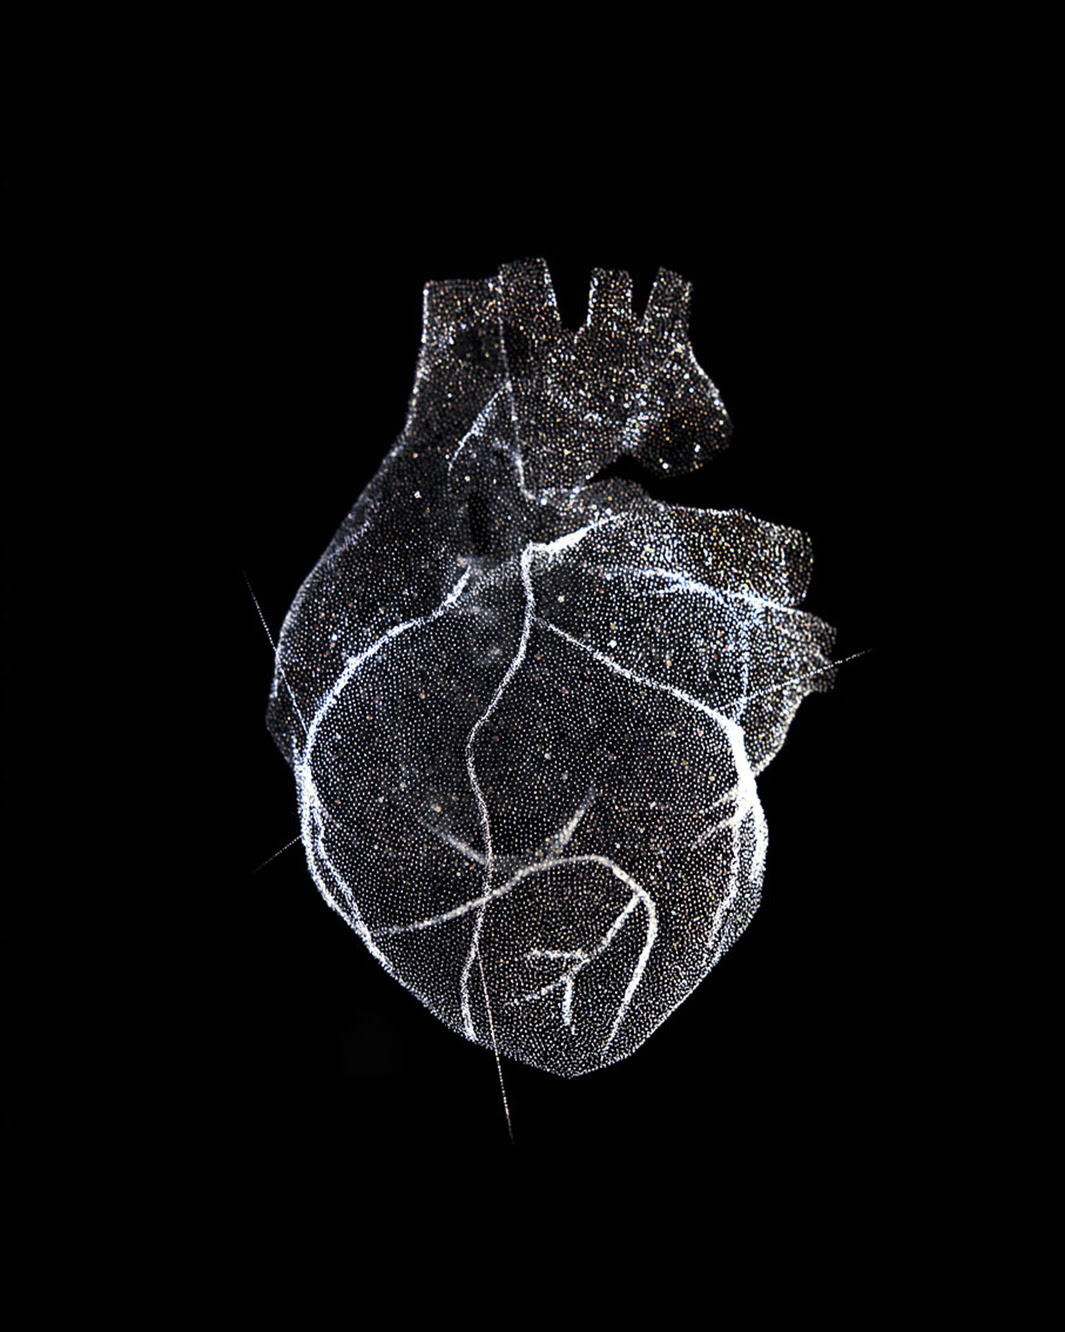 Reiner Riedler: Glass model of a heart, 2012